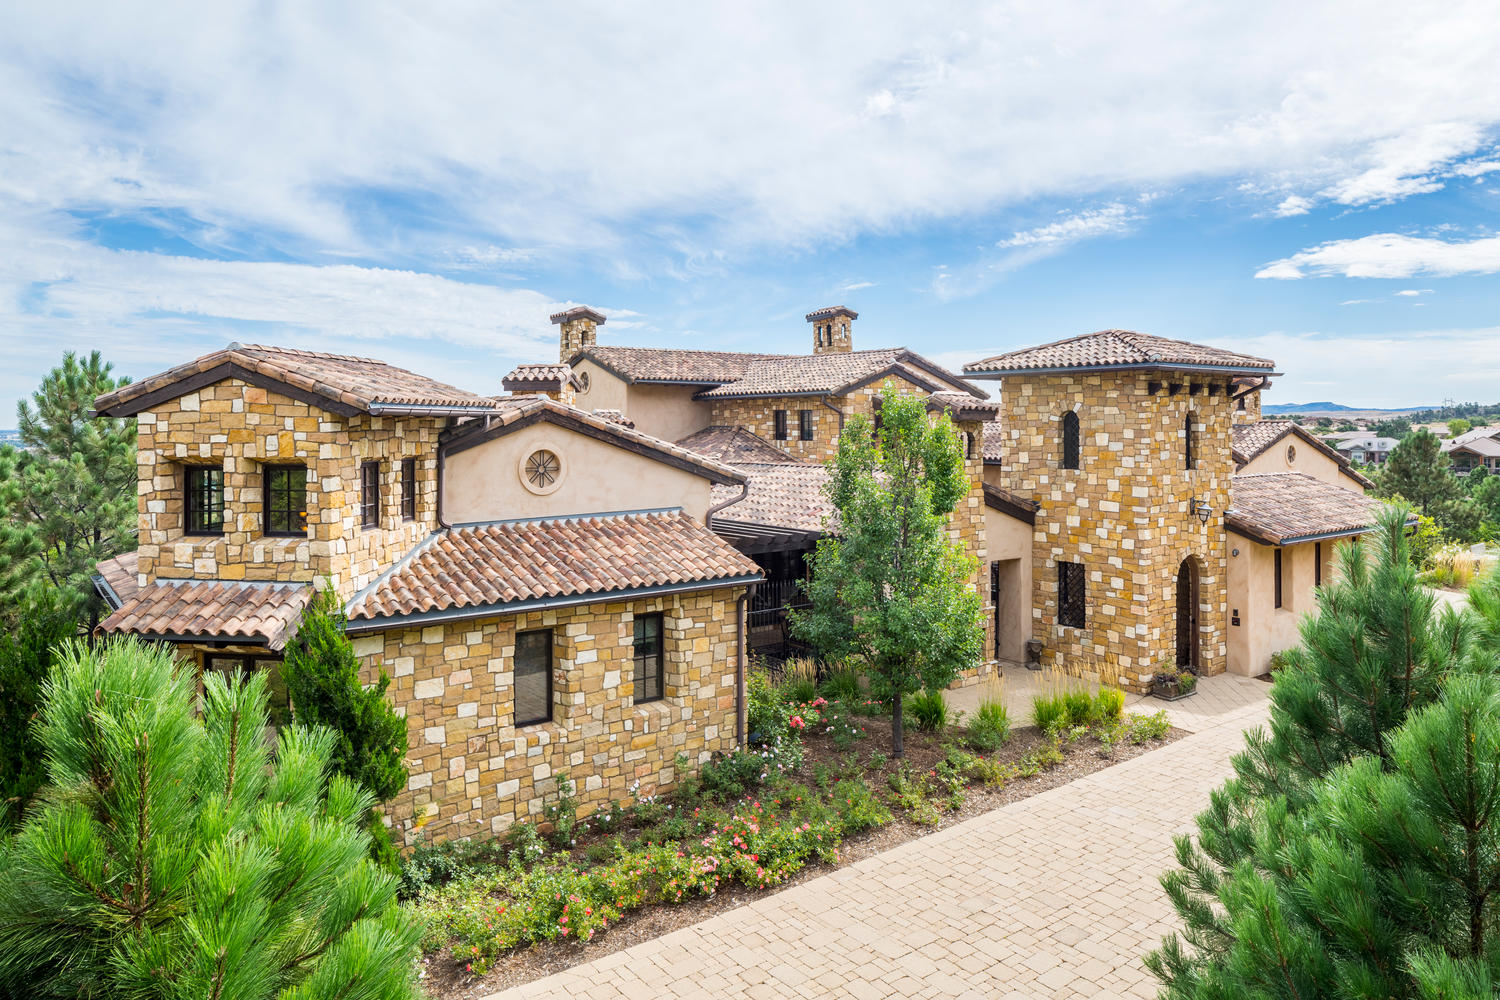 Single Family Home for Sale at Rare estate property within the gates of Ravenna 7625 Dante Dr Littleton, Colorado, 80125 United States